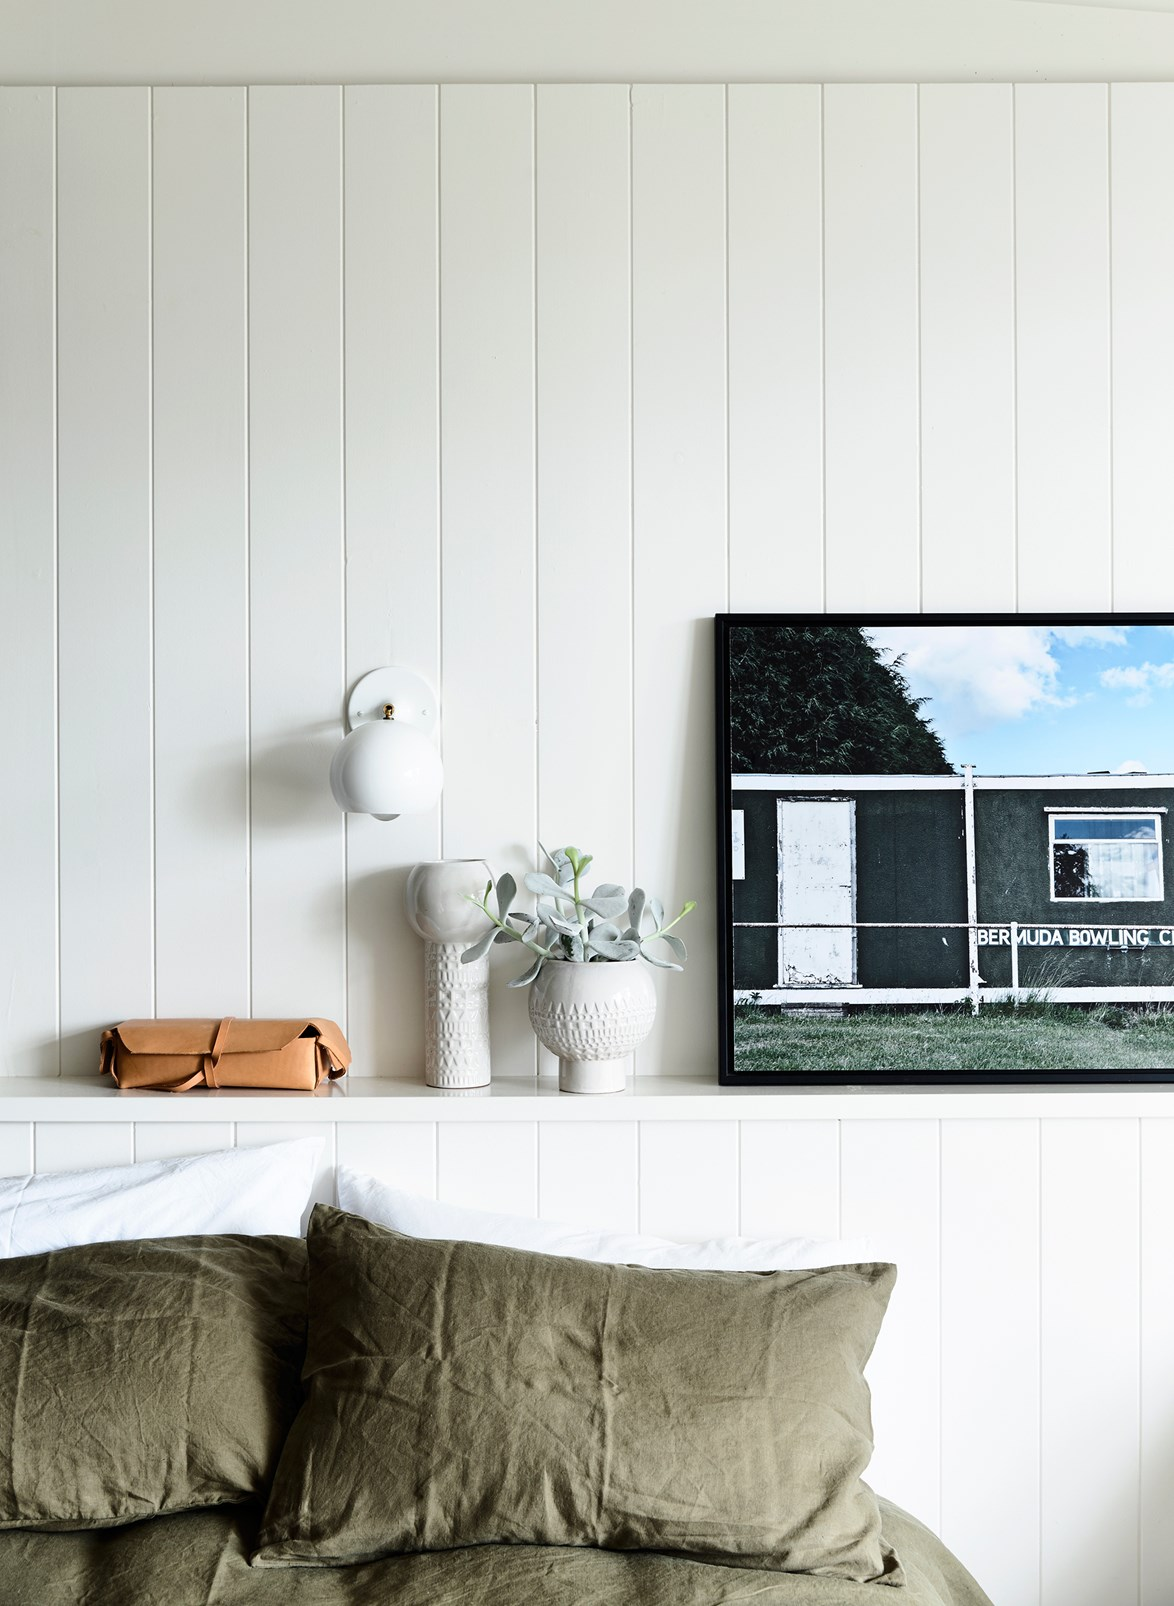 """When it came to [making over her beach shack](https://www.homestolove.com.au/beach-shack-gets-unique-makeover-3779